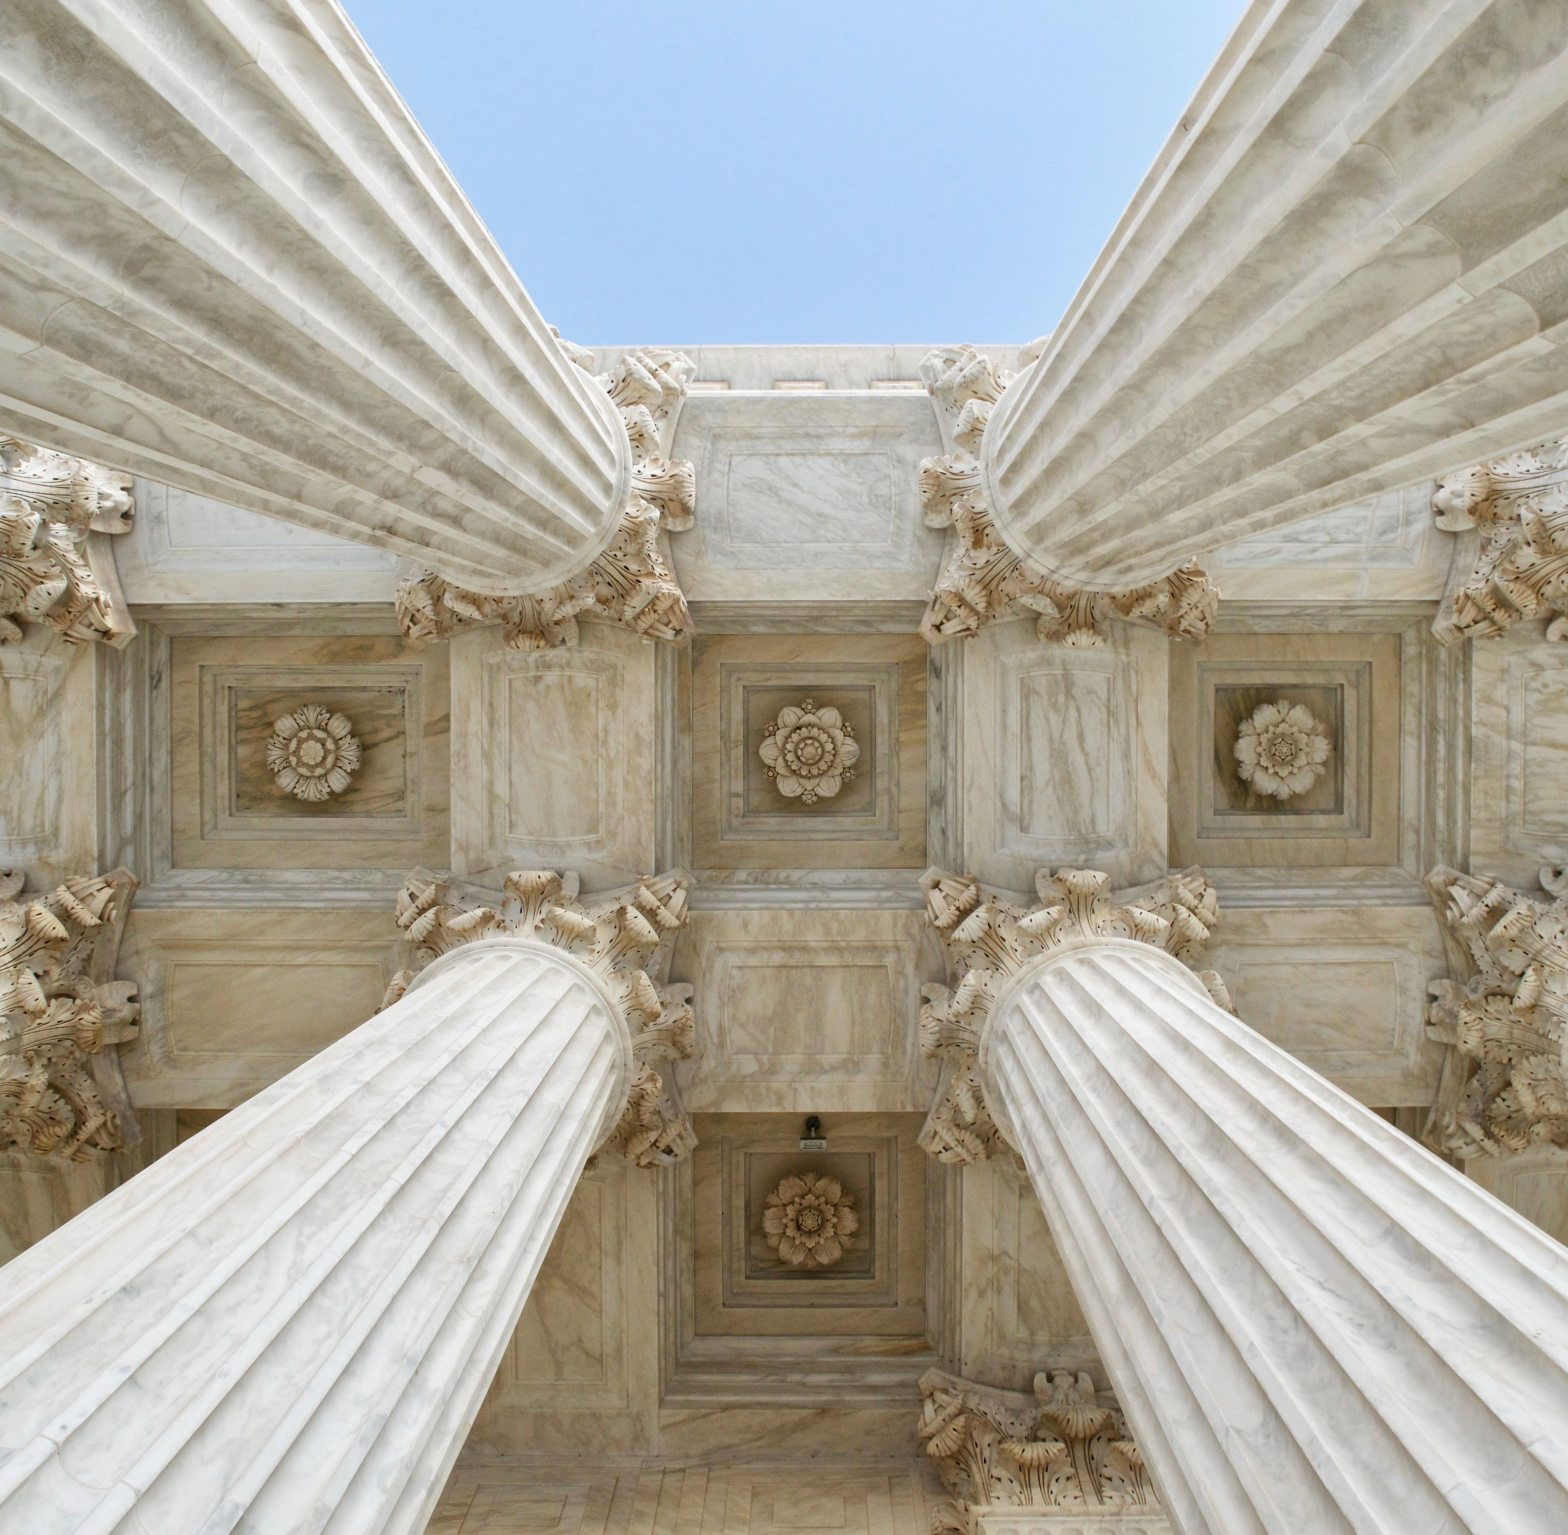 View looking up at 4 cement pillars – The 4 Pillars of Healing and Growth